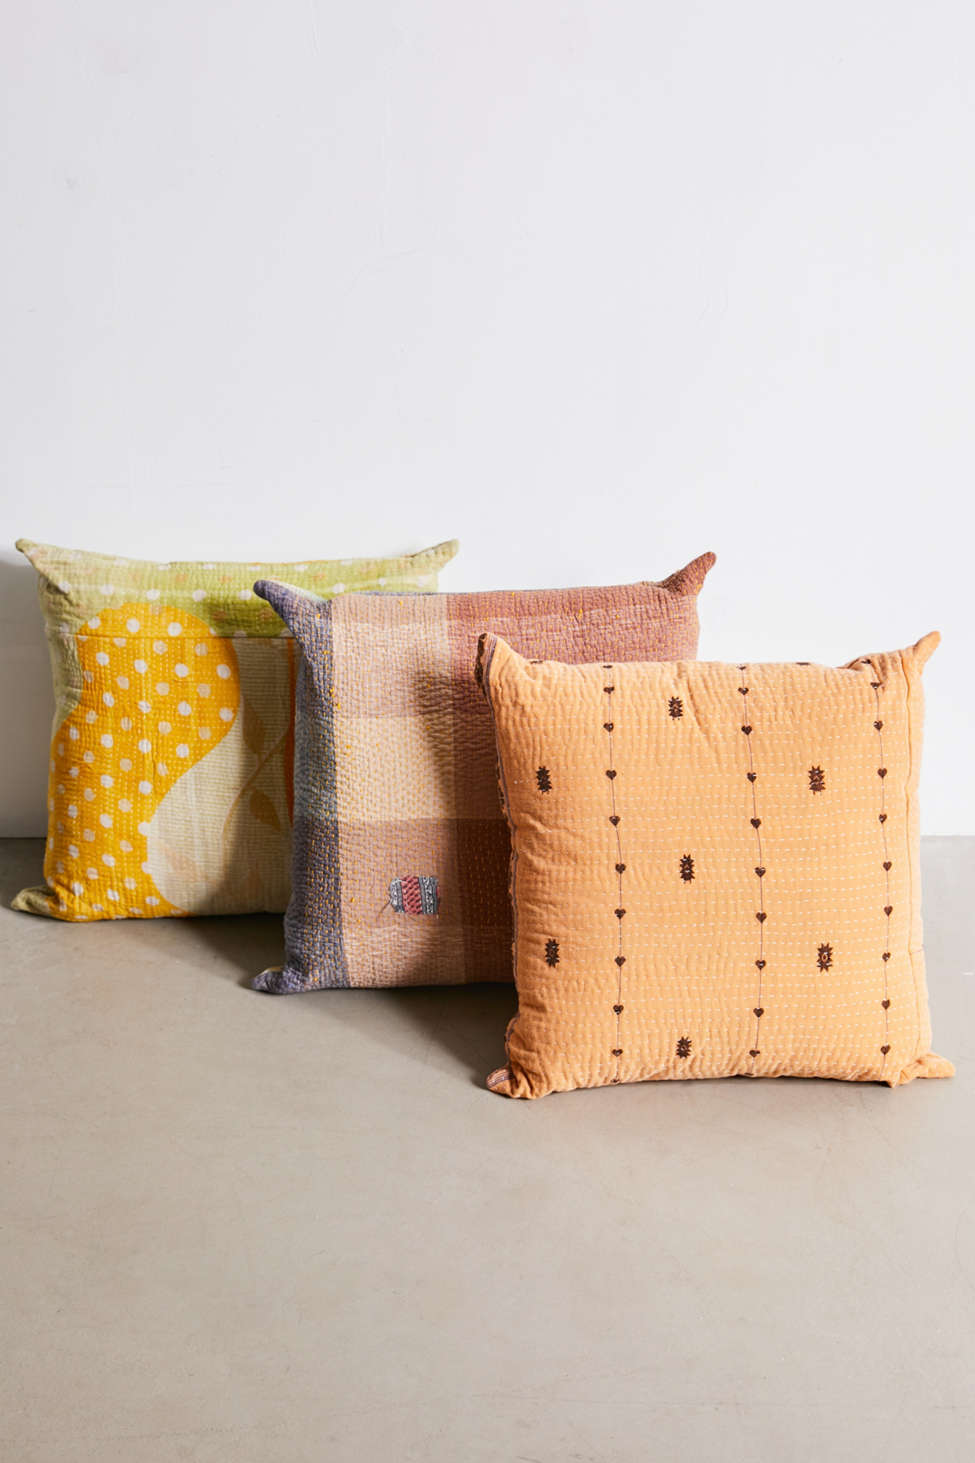 Slide View: 1: Urban Renewal One-Of-A-Kind Bleached Out Kantha Throw Pillow